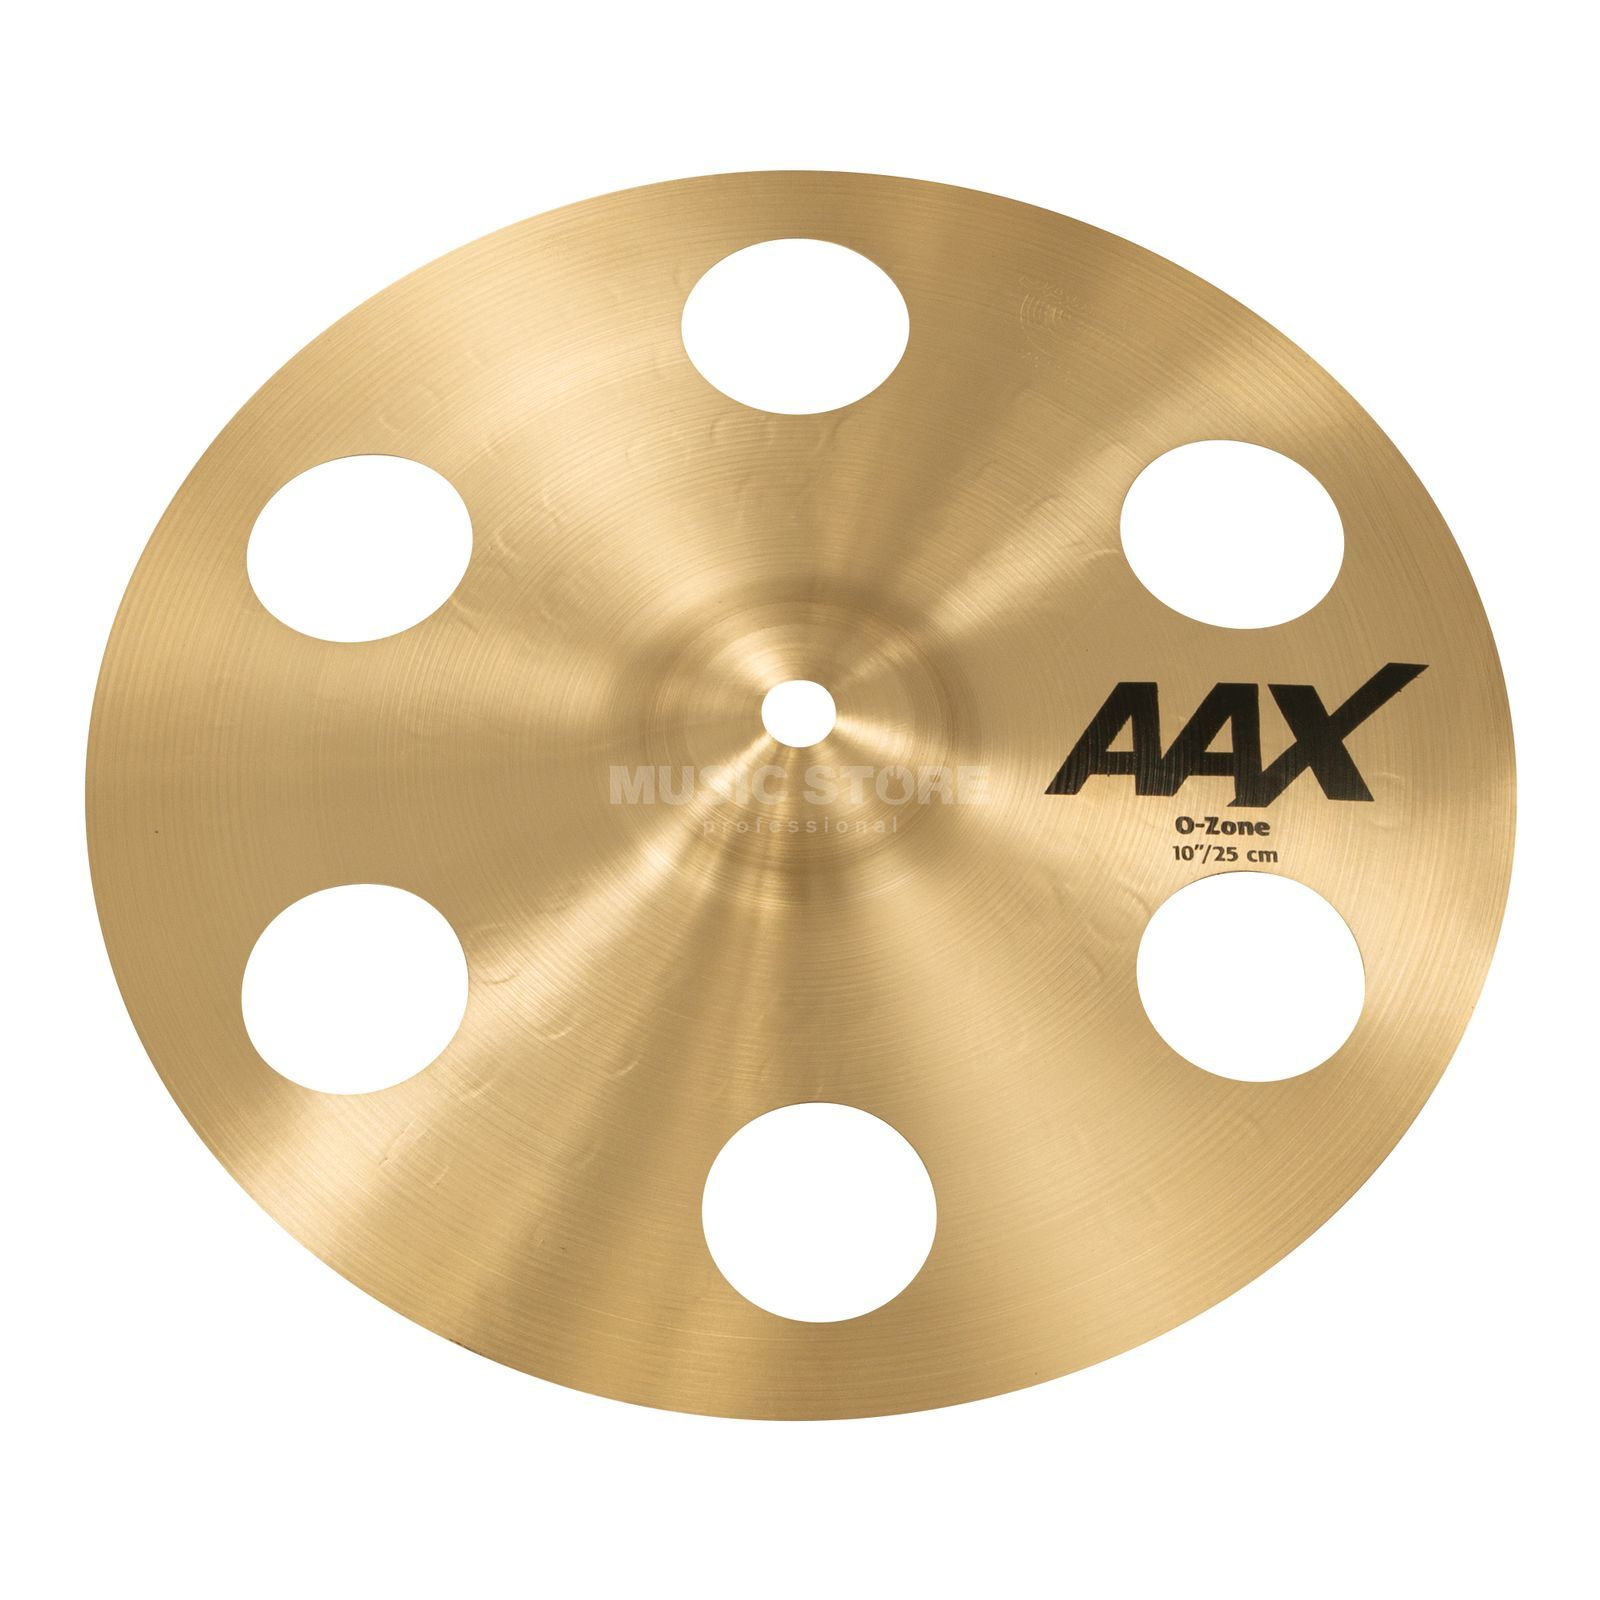 "Sabian AAX O-Zone Splash 10"" Natural Finish Produktbillede"